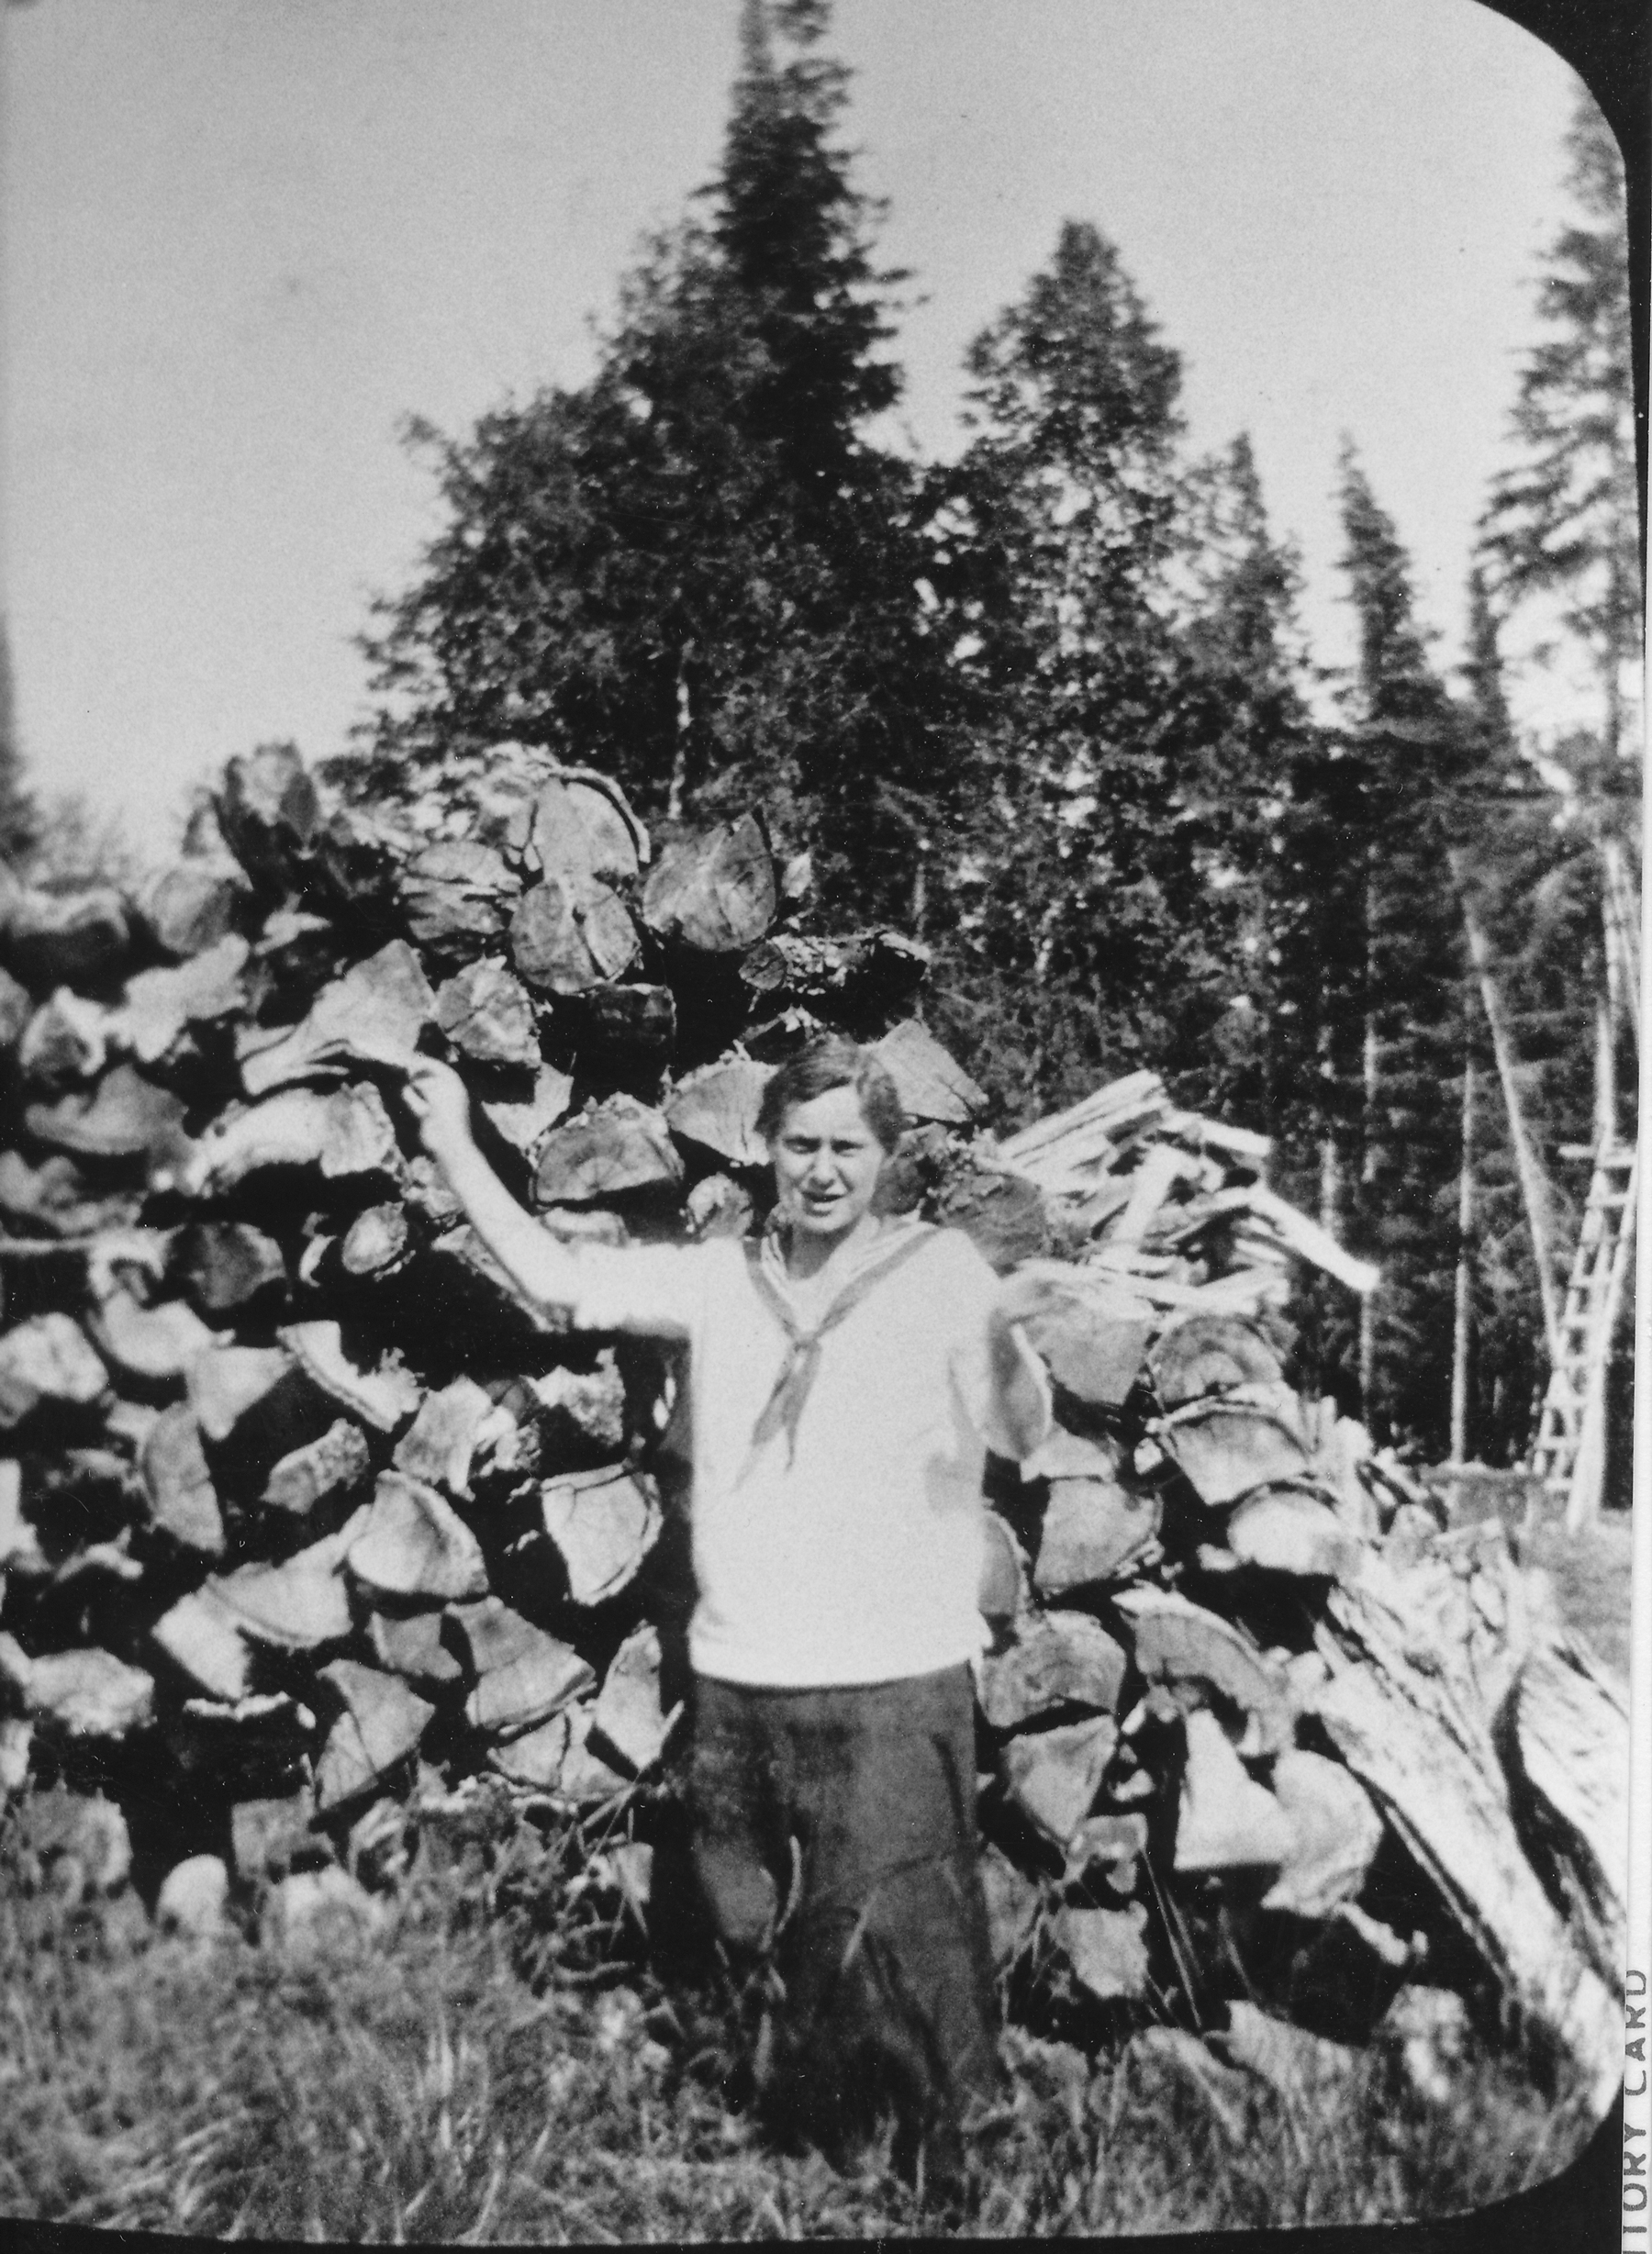 Gert by the wood pile at the West Bay Club in 1916